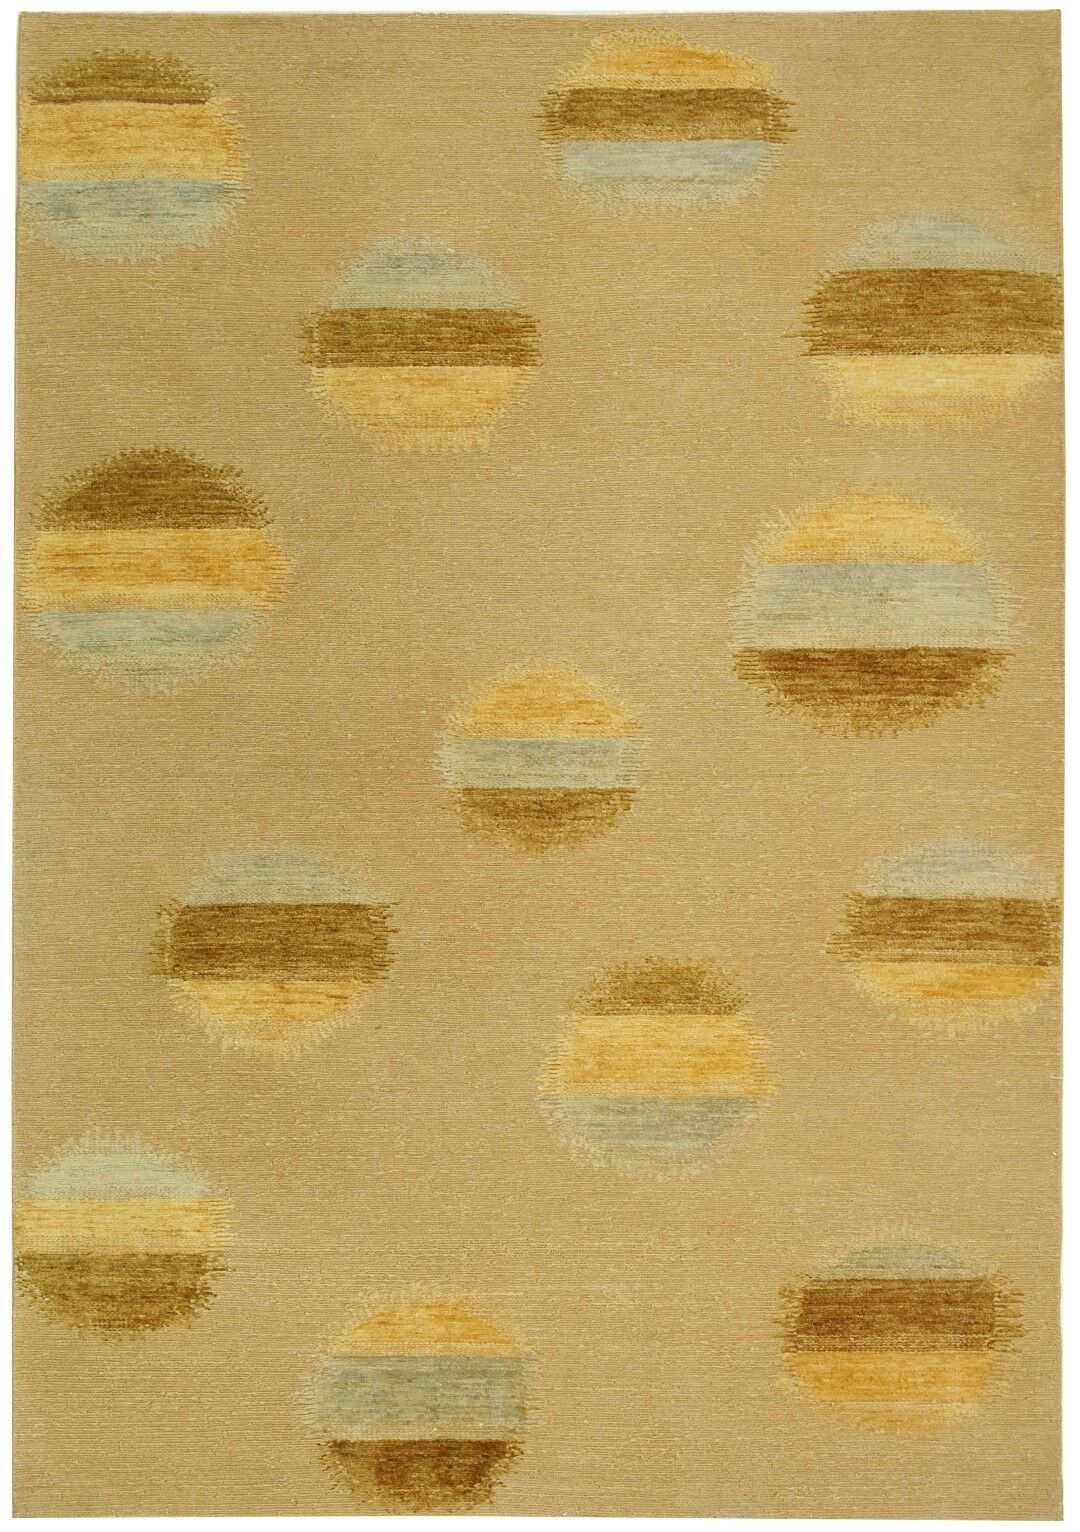 Valerie Hand-Knotted Beige Area Rug Rug Size: Rectangle 8' x 10'